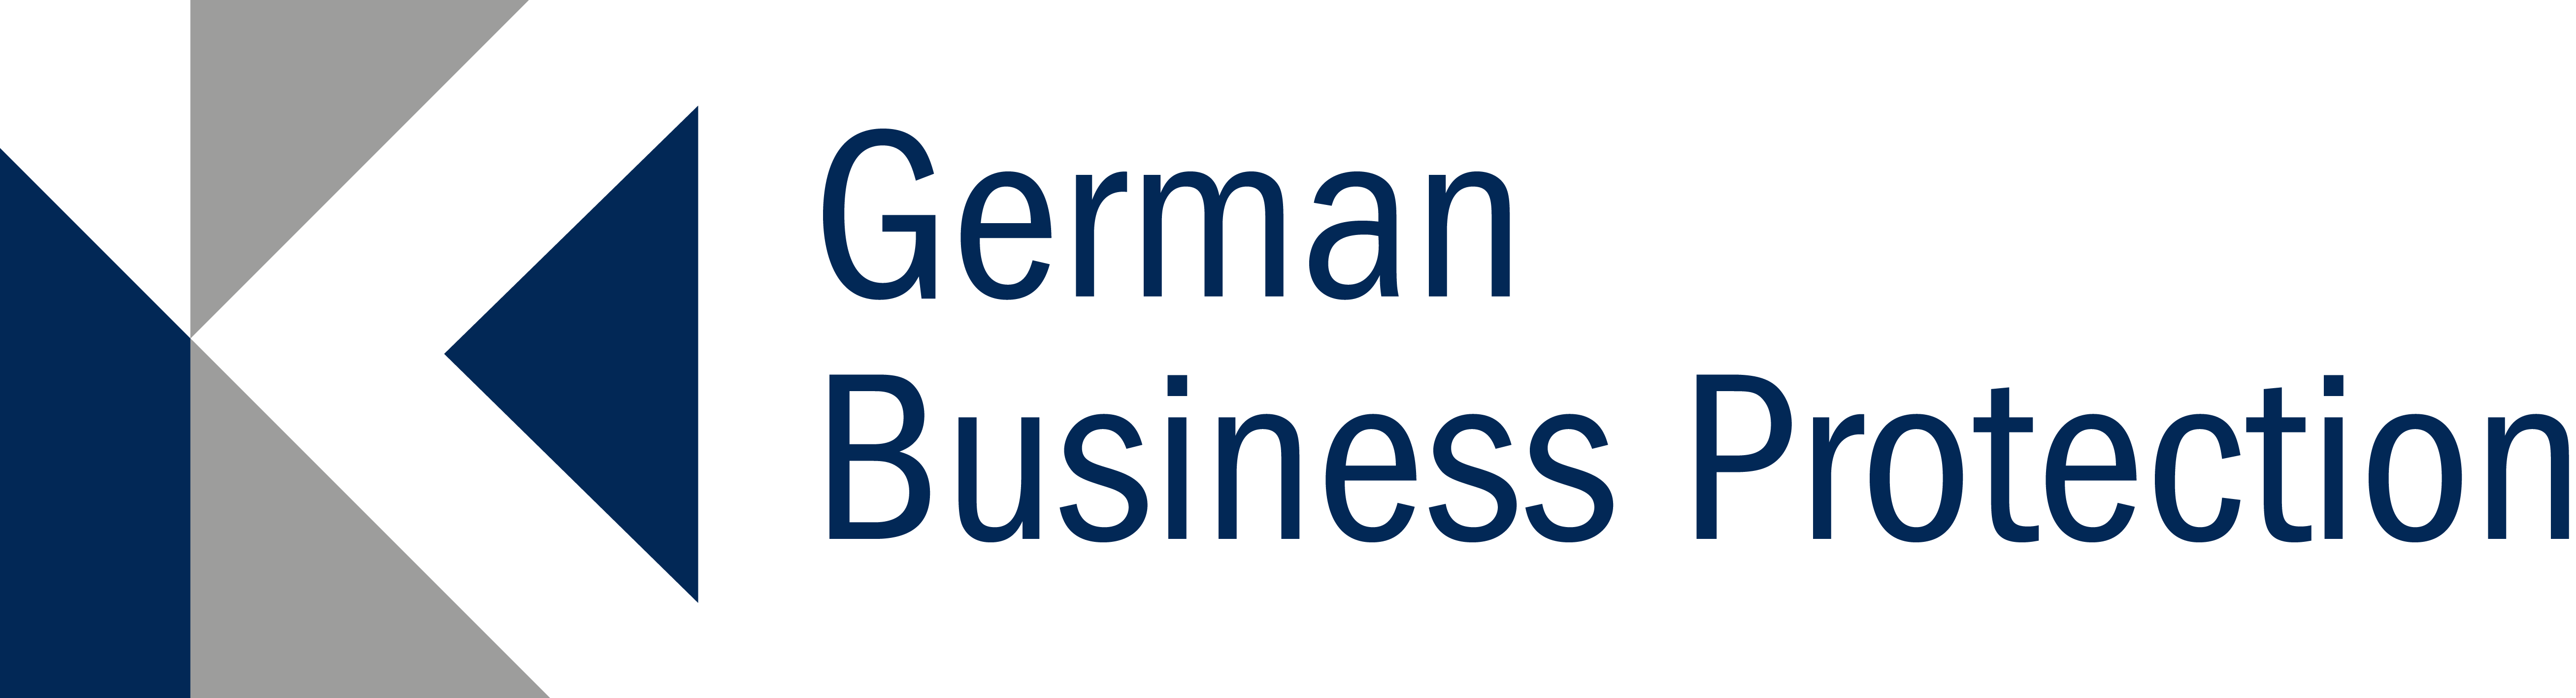 German Business Protection GmbH